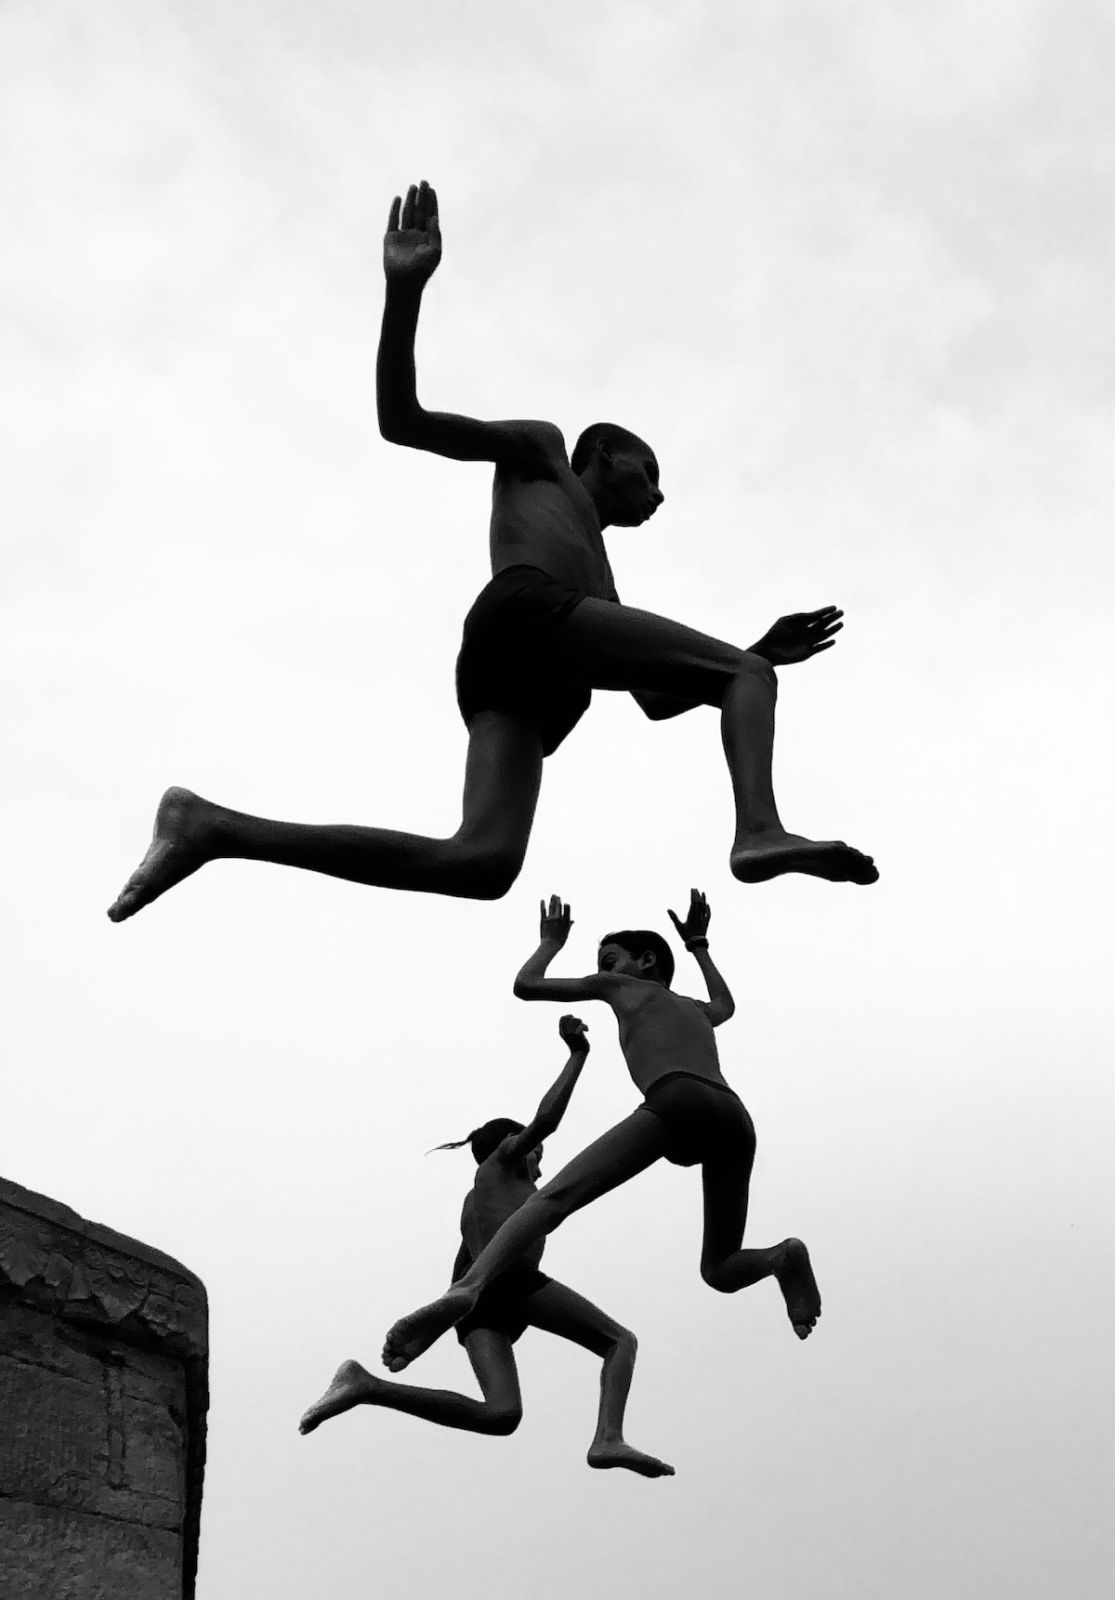 movement photography award winning flying boys by dimpy bhalotia